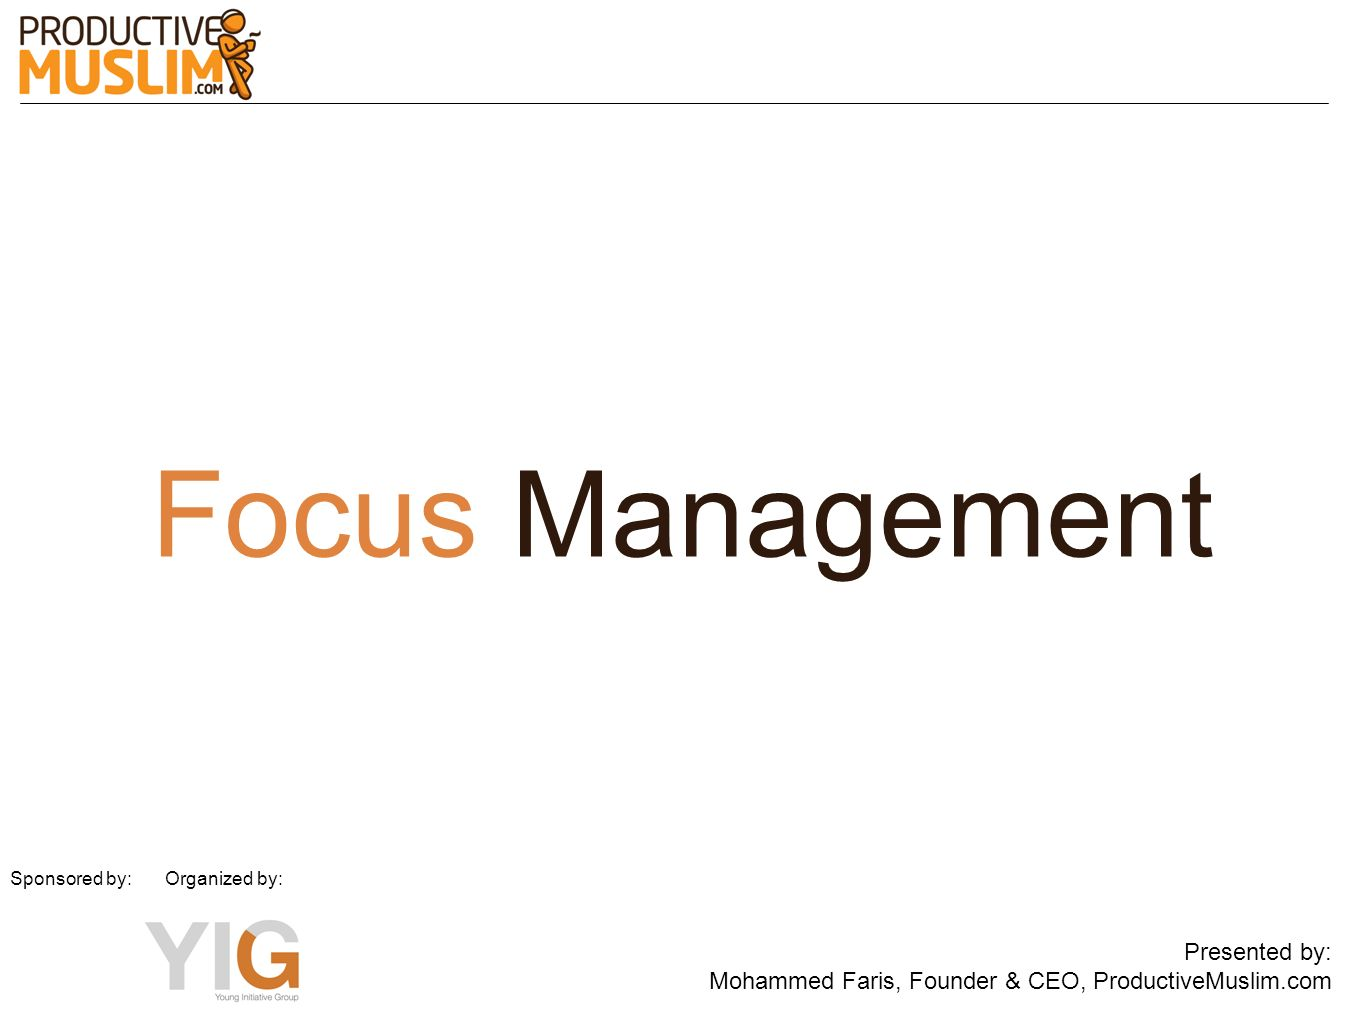 Focus Management What does focus mean Presented by: